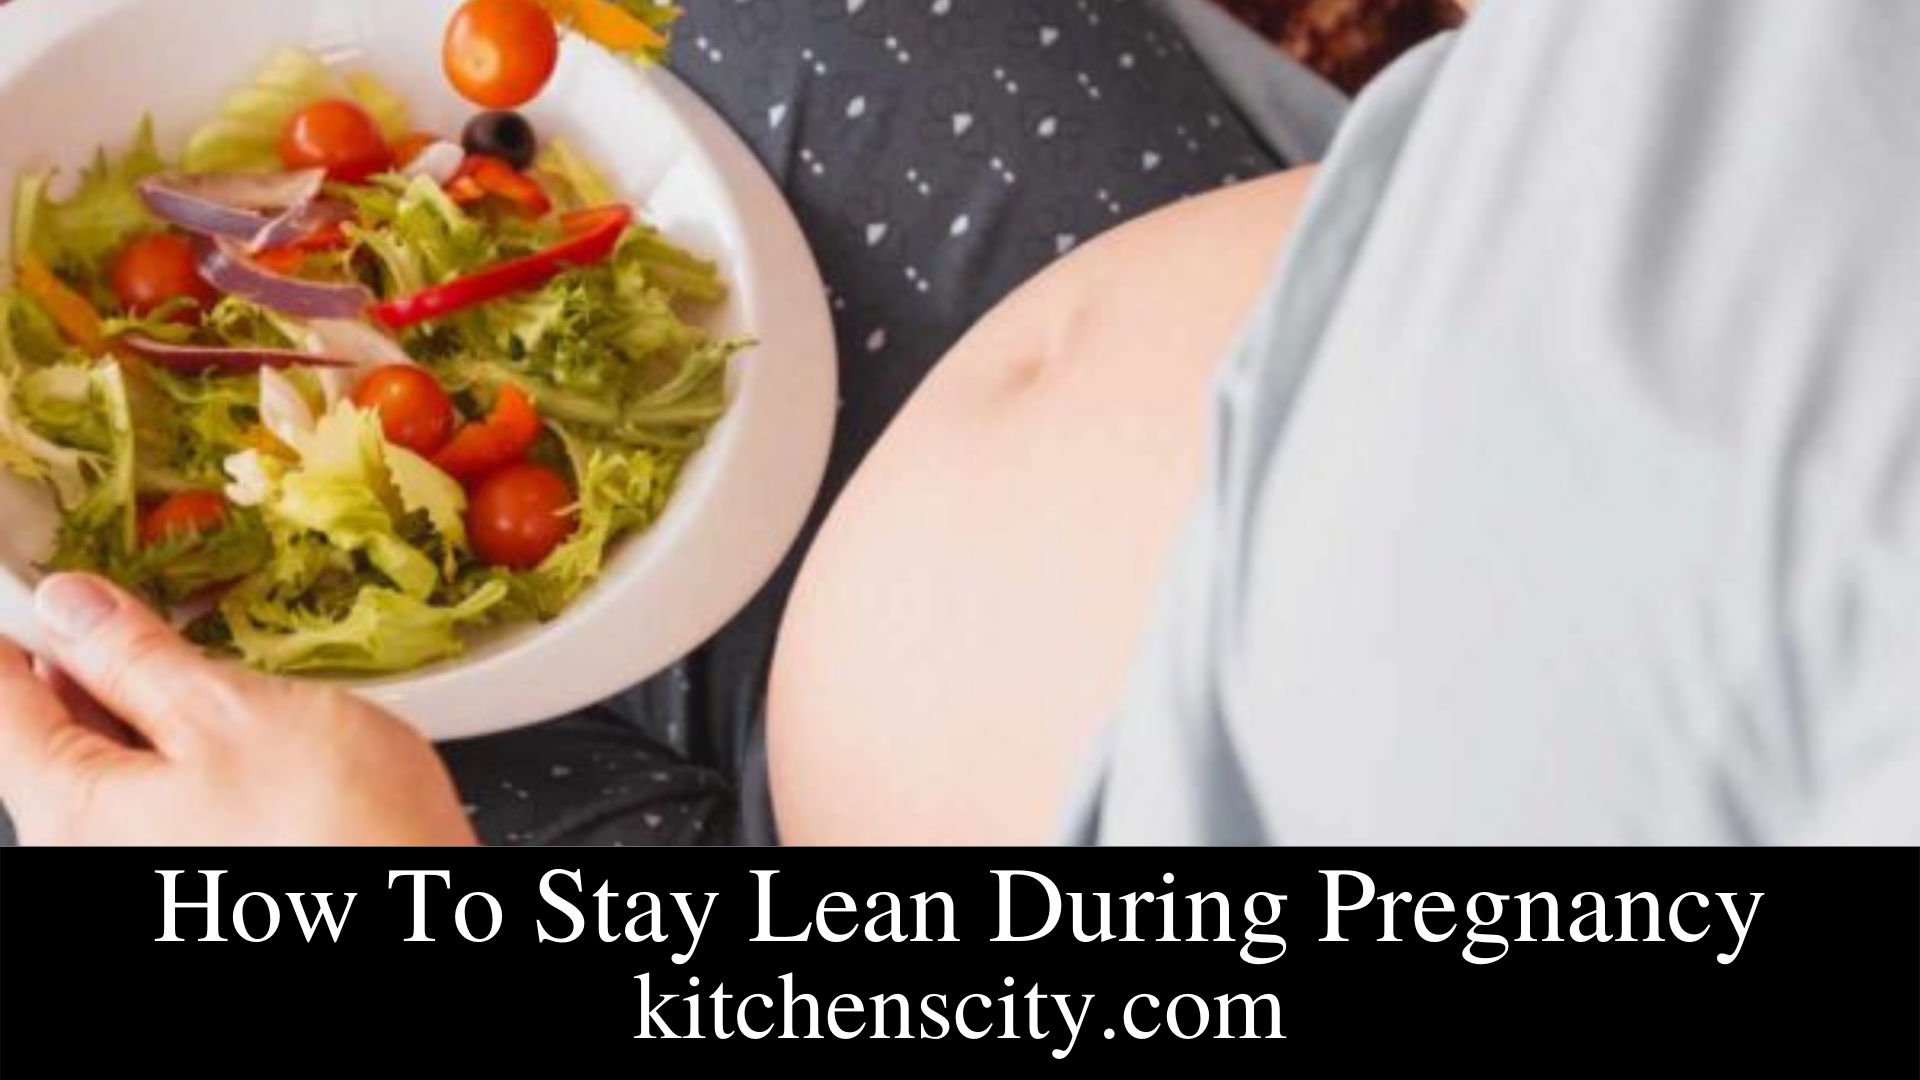 How To Stay Lean During Pregnancy